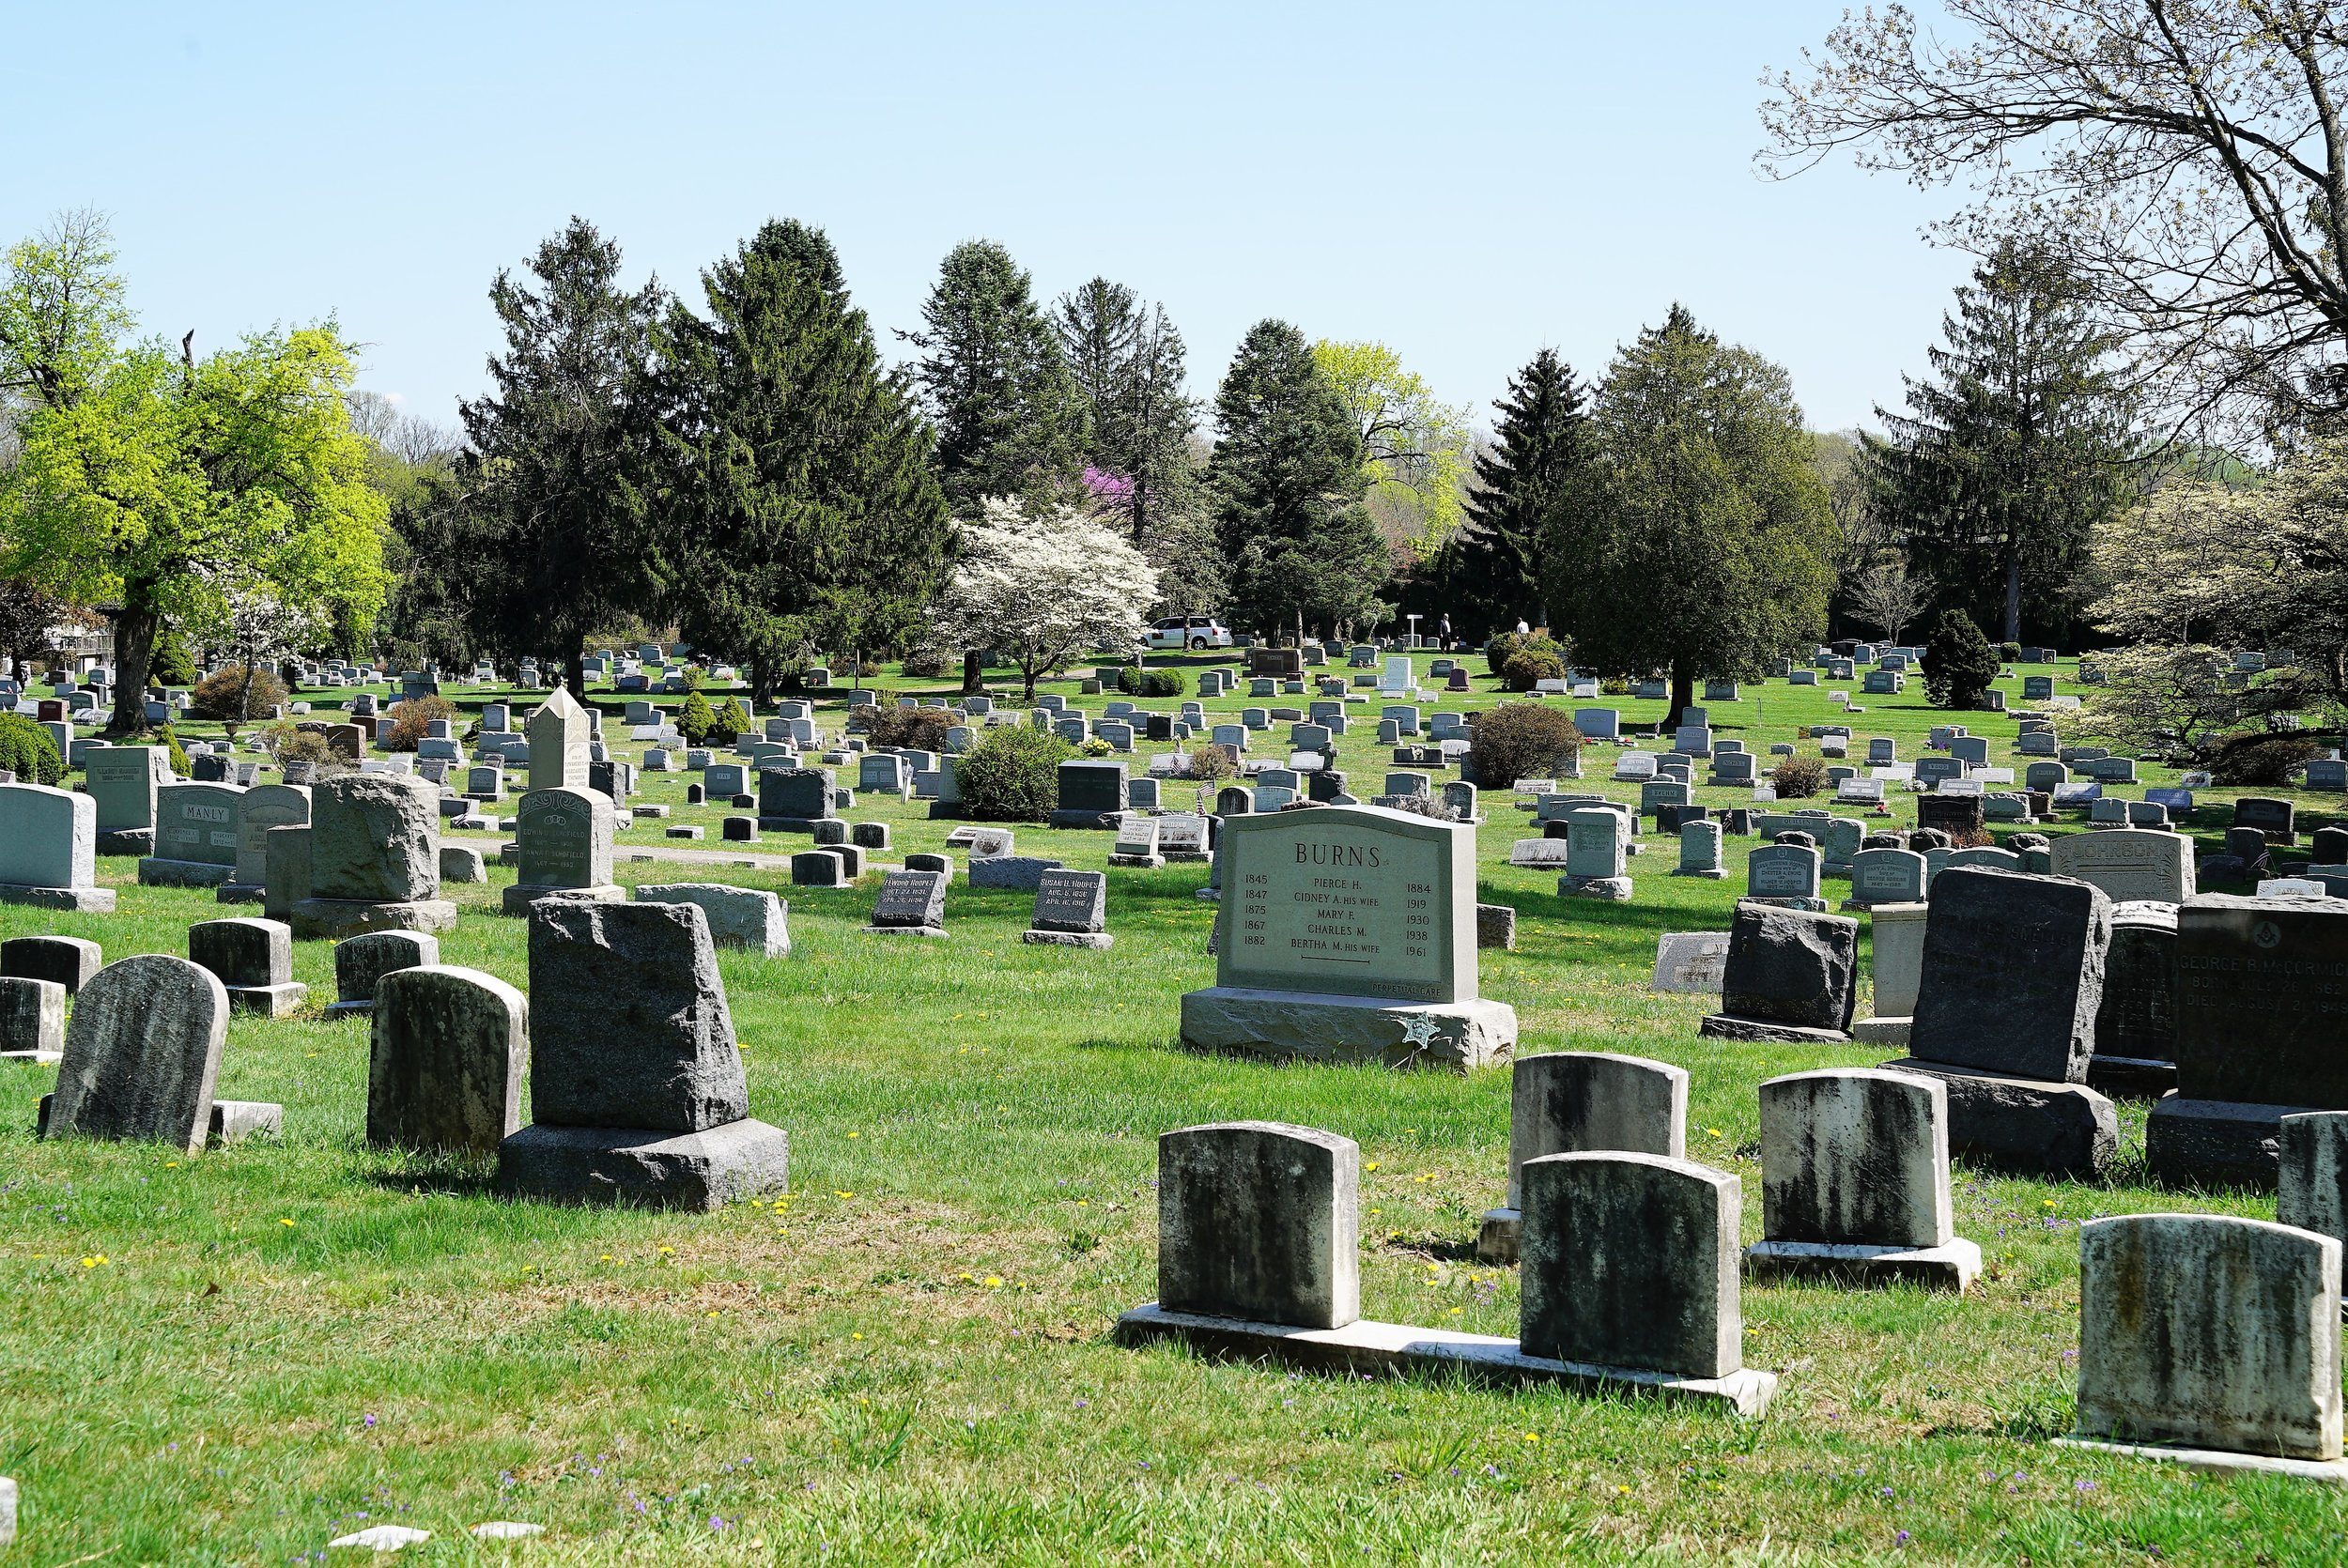 The view at Green Mount Cemetery in West Chester, PA. April 2017.